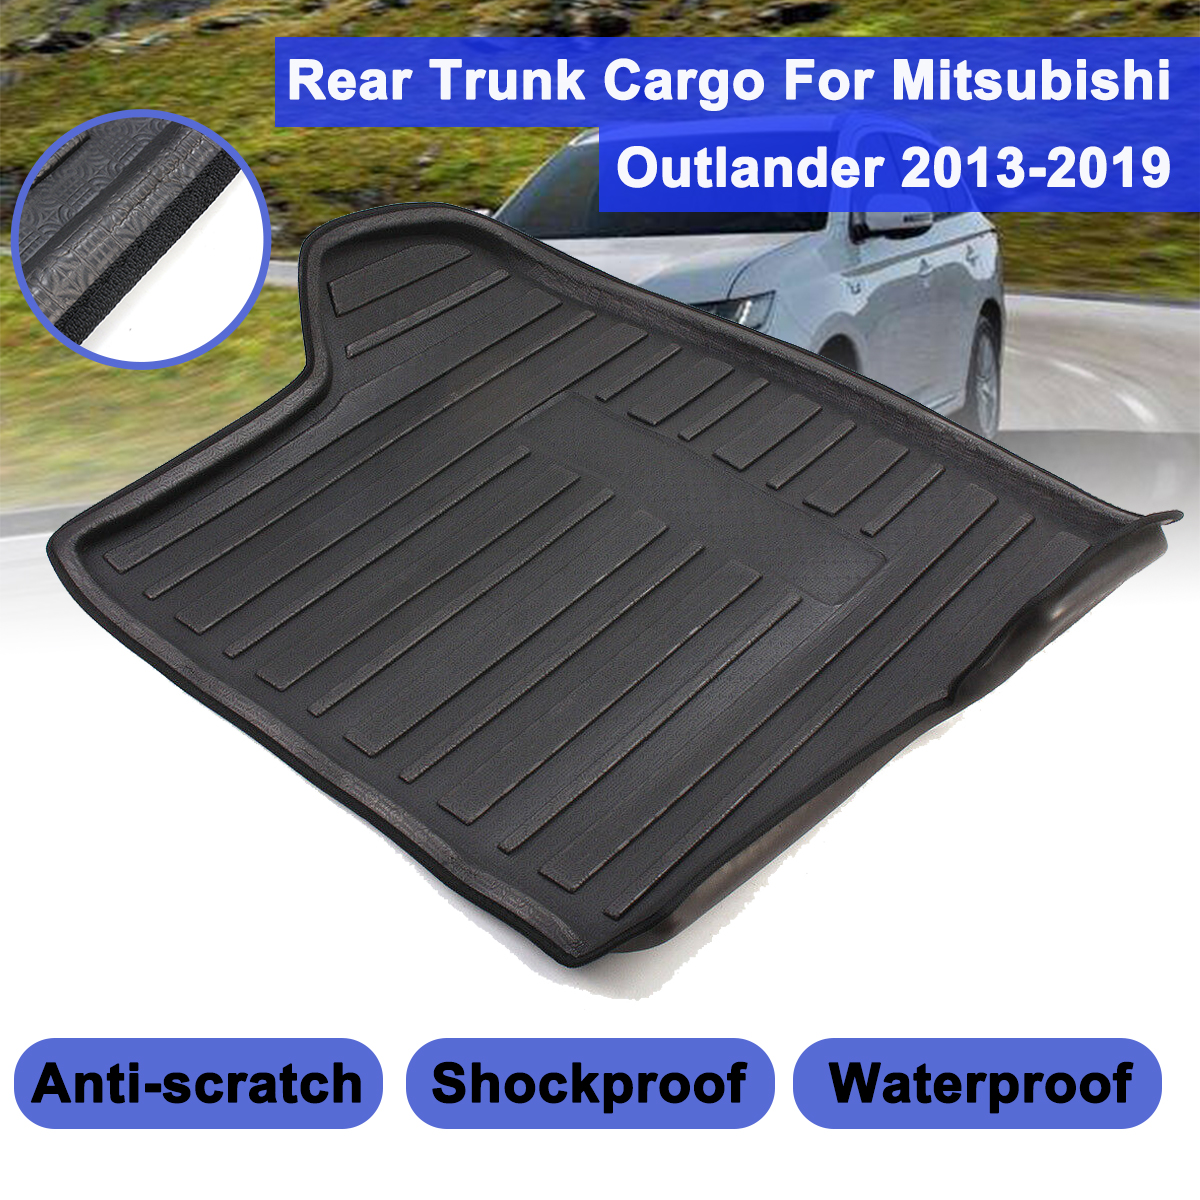 Cargo Liner Rear Trunk For Mitsubishi Outlander 2013 2019 Cargo Floor Mat Waterproof Anti skid Shock proof Buffer Performance|  - title=